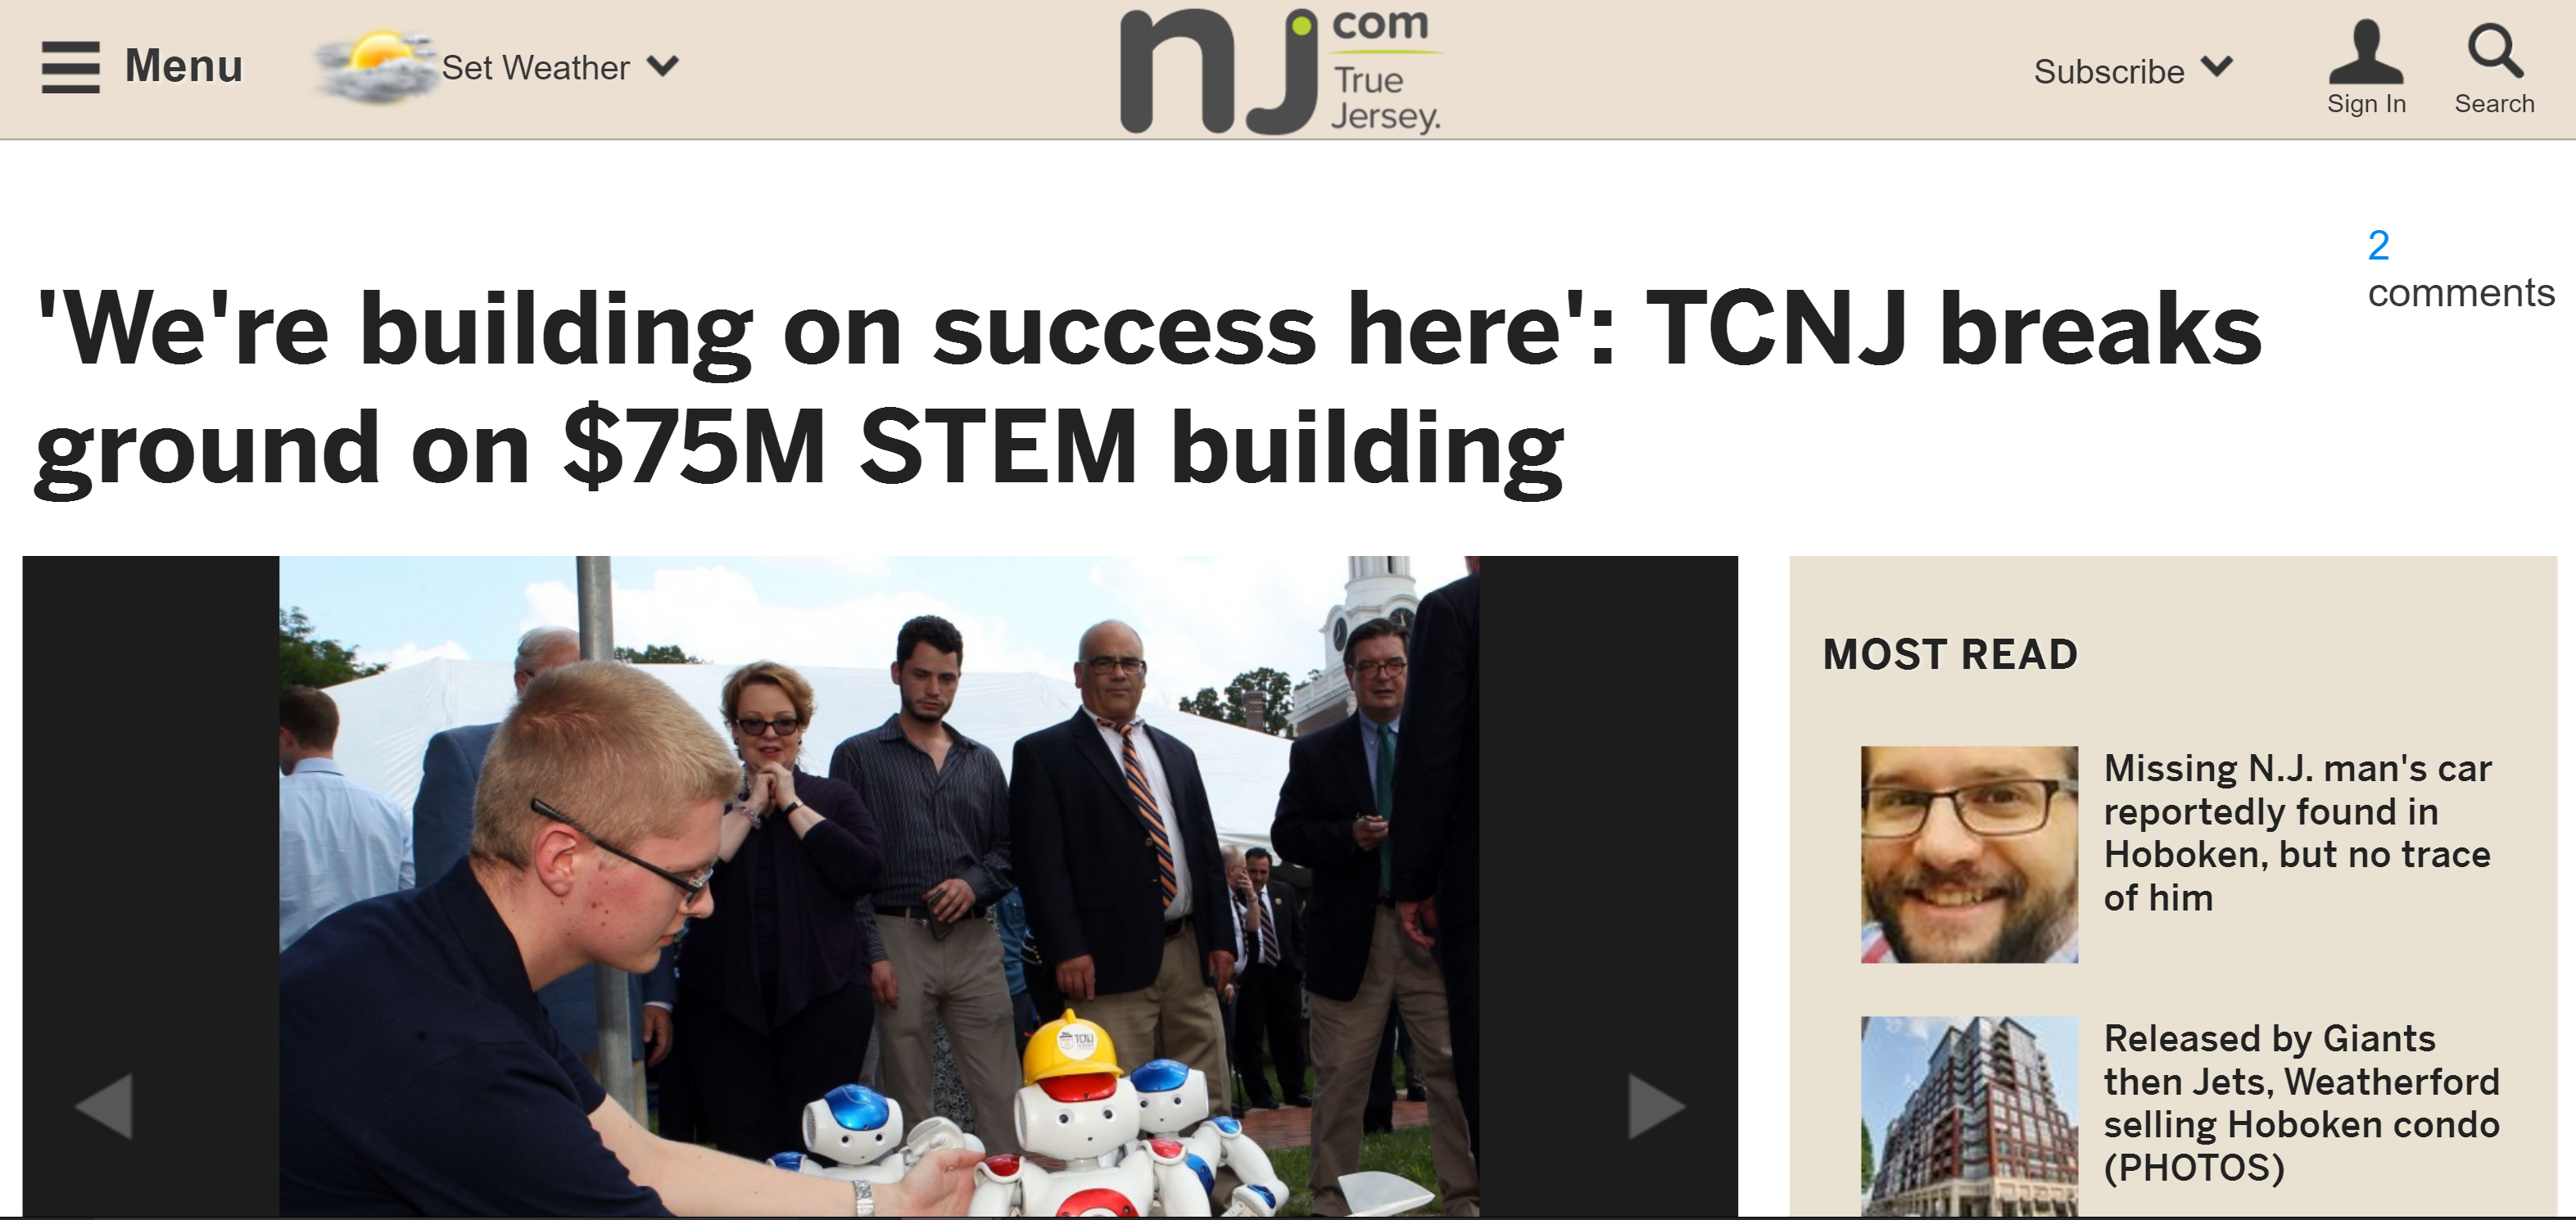 'We're building on success here': TCNJ breaks ground on $75M STEM building